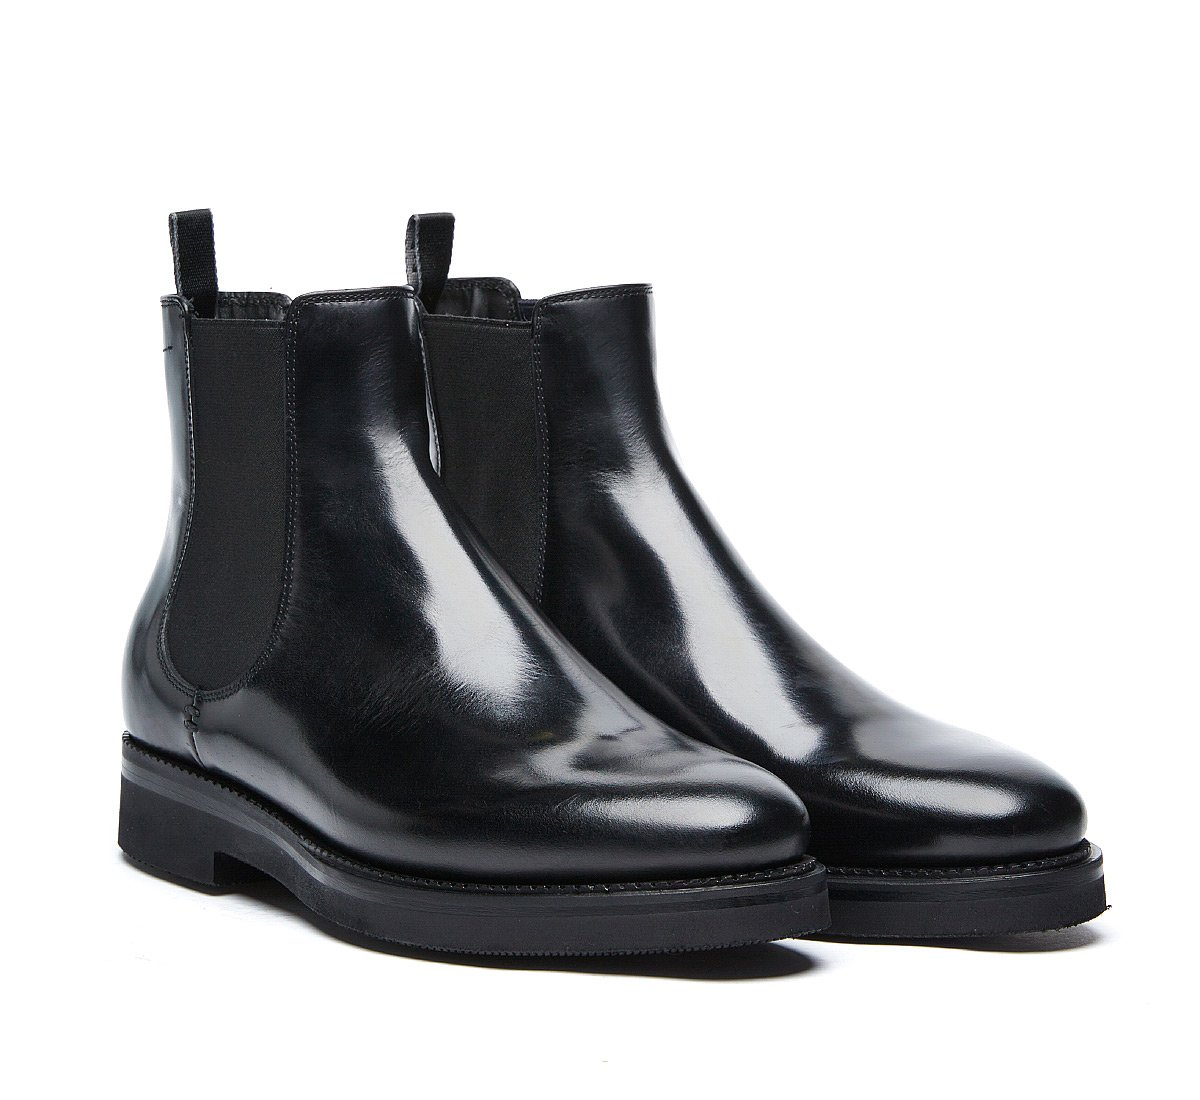 Fabi Beatle boots in luxury calf leather with wool lining